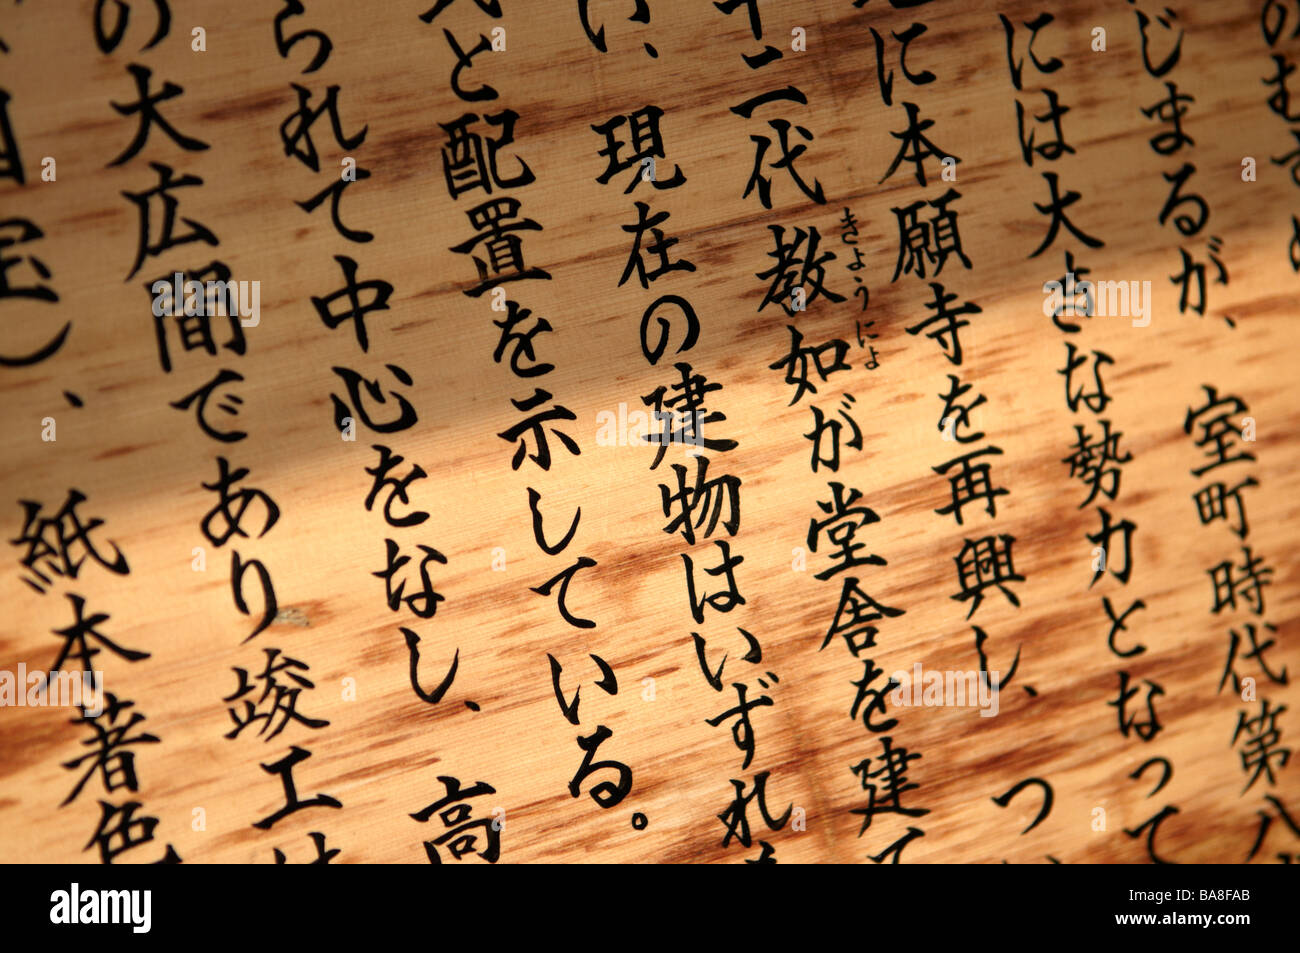 japanese writing on a wooden slats in kyoto japan stock